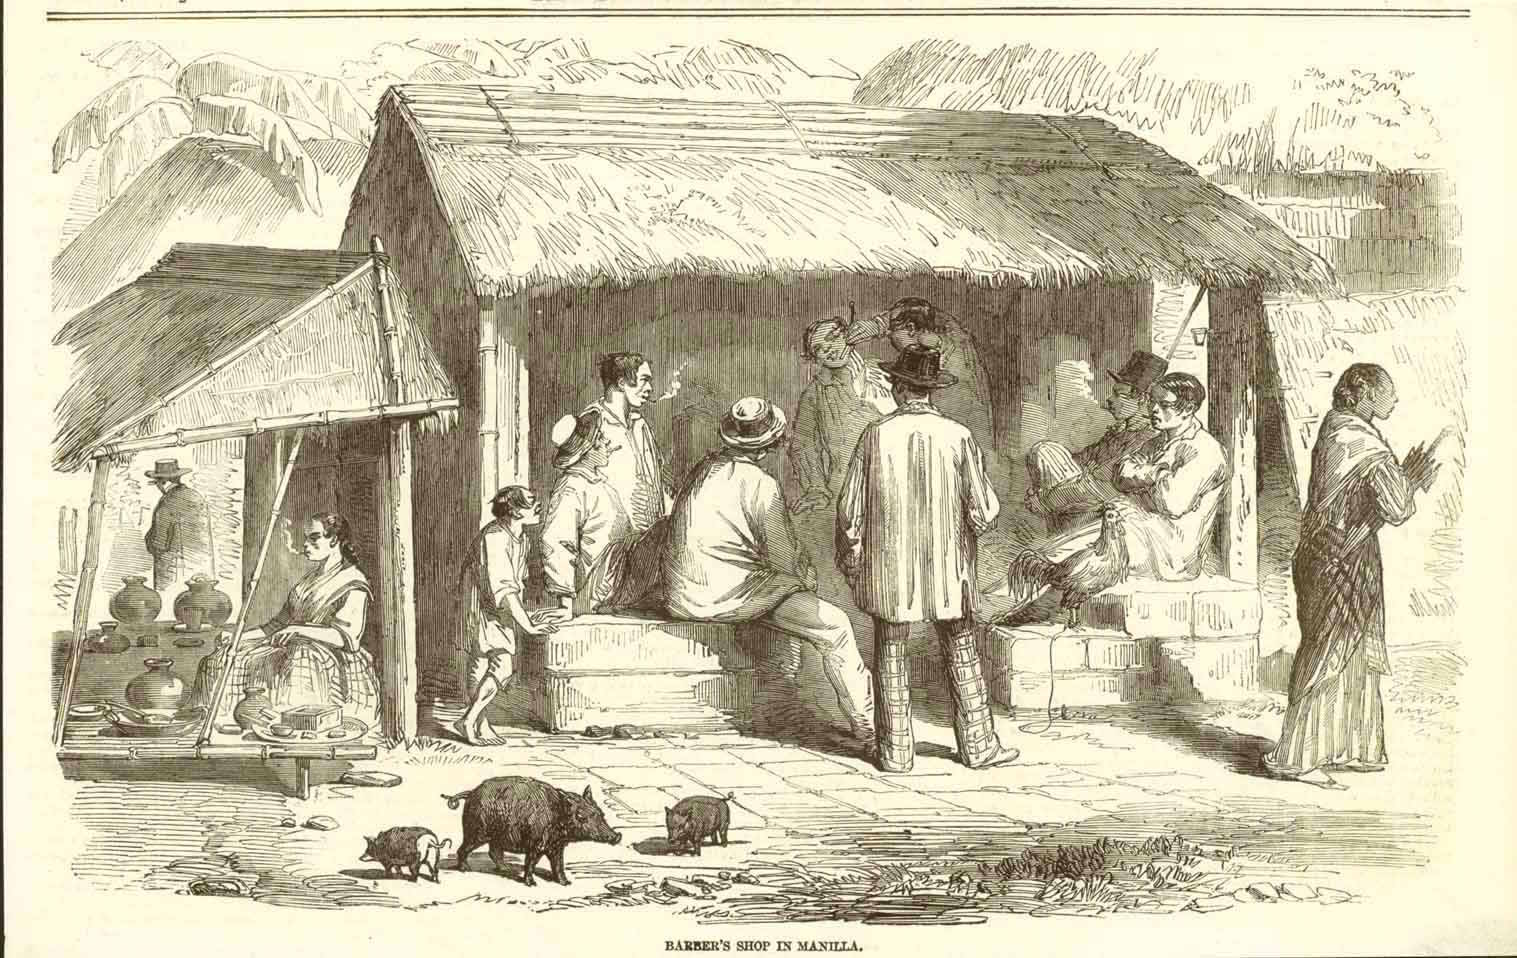 """Barber's Shop in Manila""  Wood engraving published 1858 in London. Reverse side is printed with unrelated text."